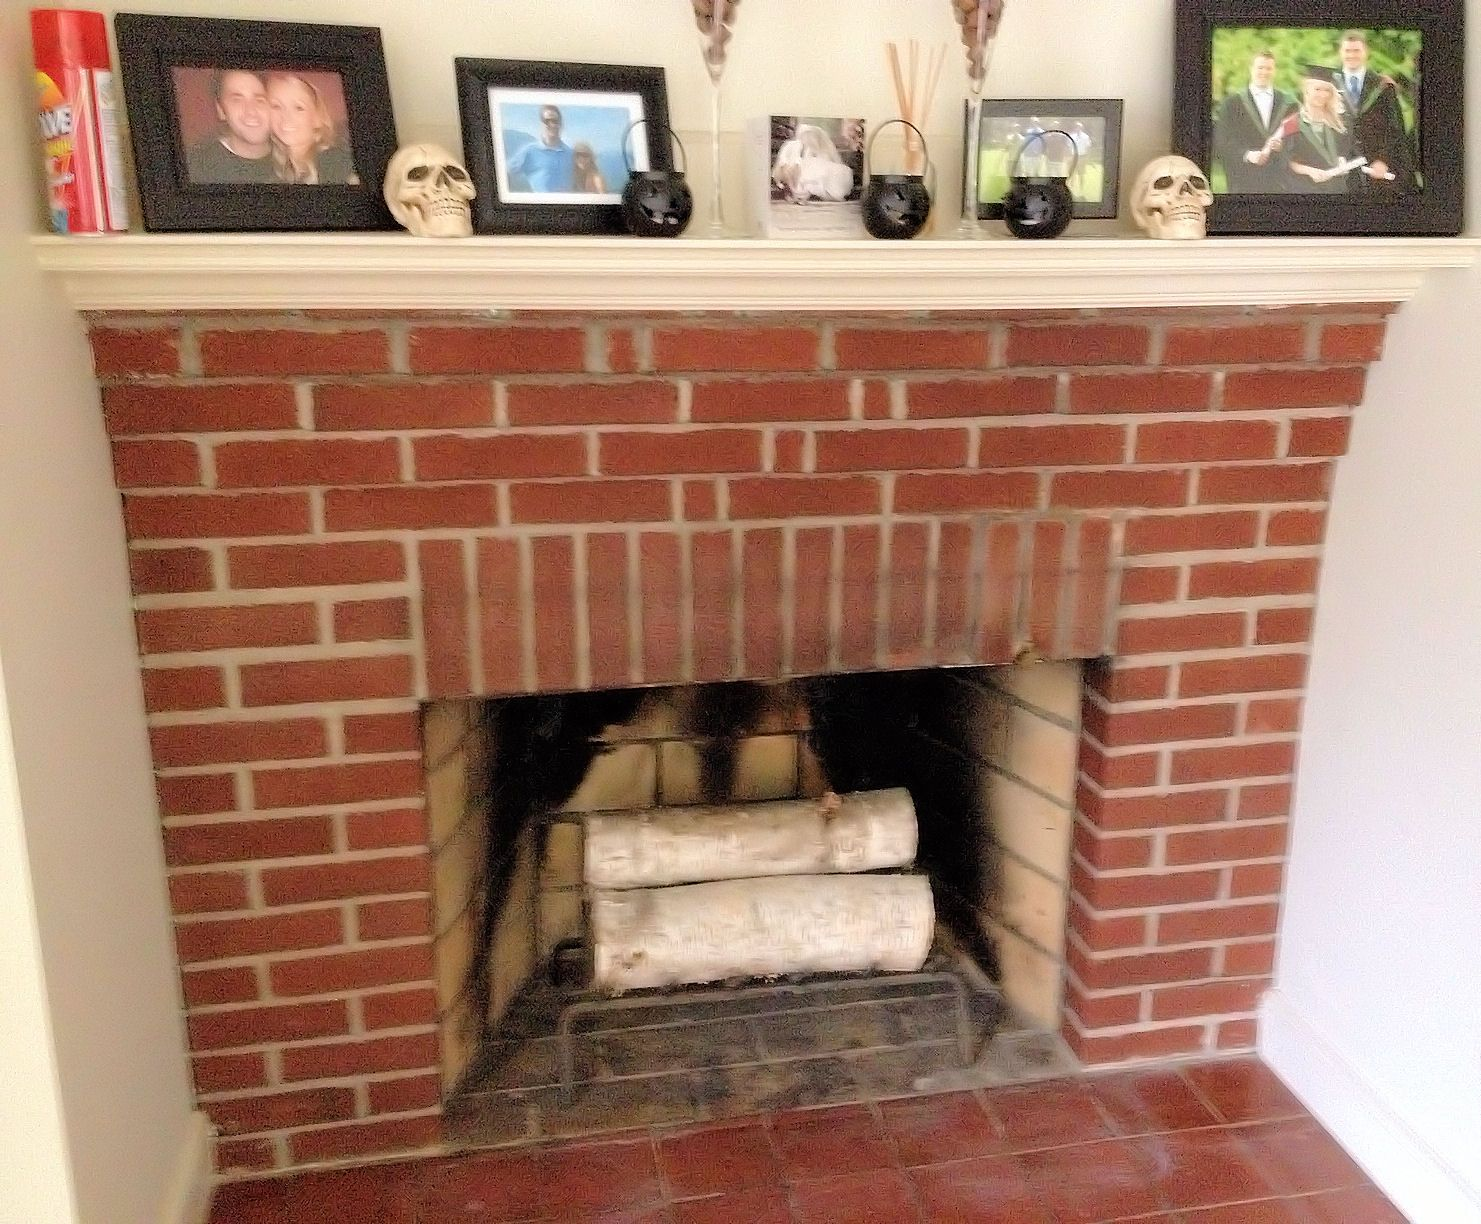 Red brick fireplace tile hearth tiles decor - Tile over brick fireplace ...